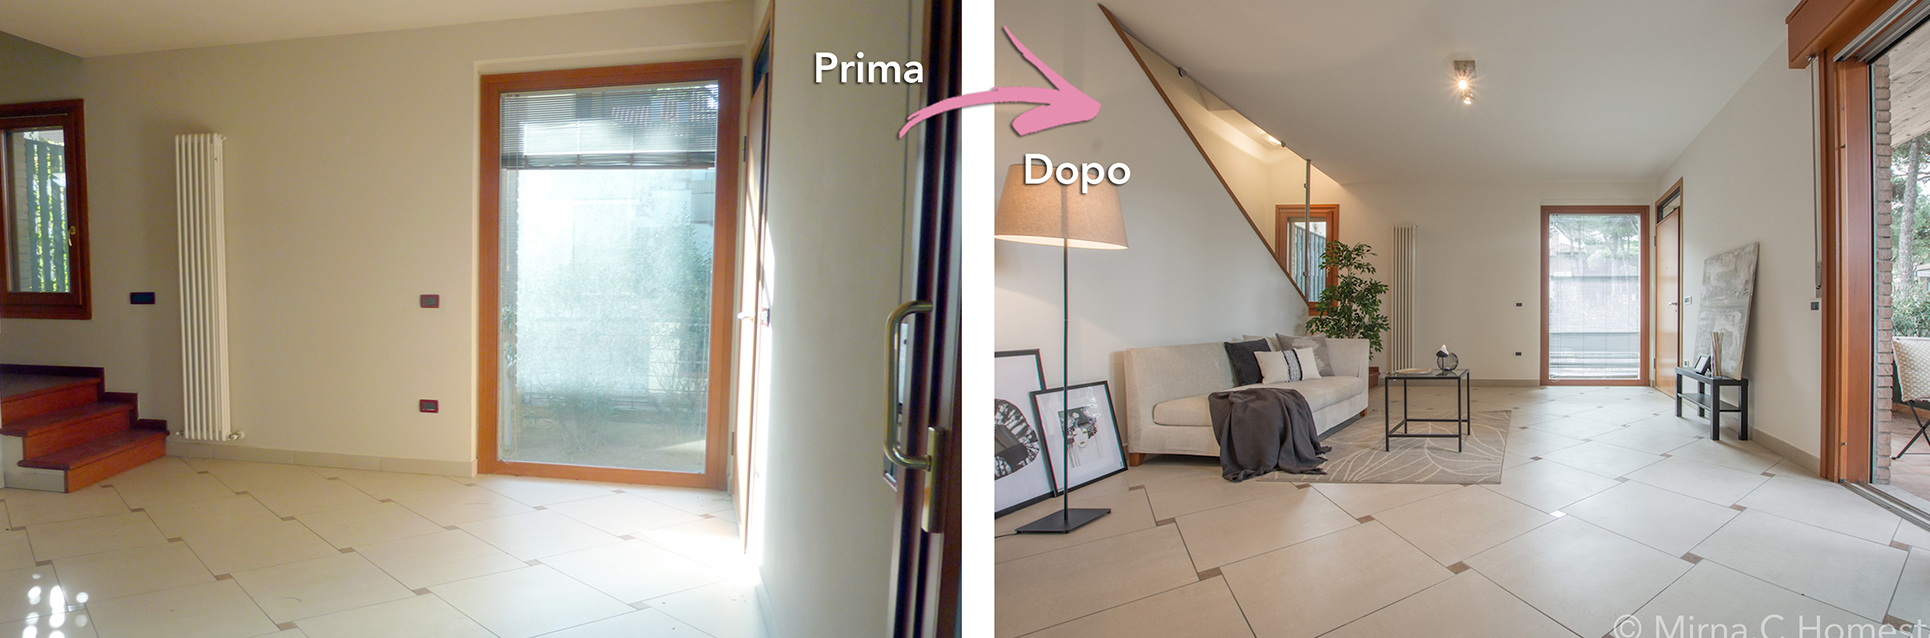 home staging milano marittima, homestaging, vendere casa con l'home staging, affitto casa con l'home staging, allestimento home staging